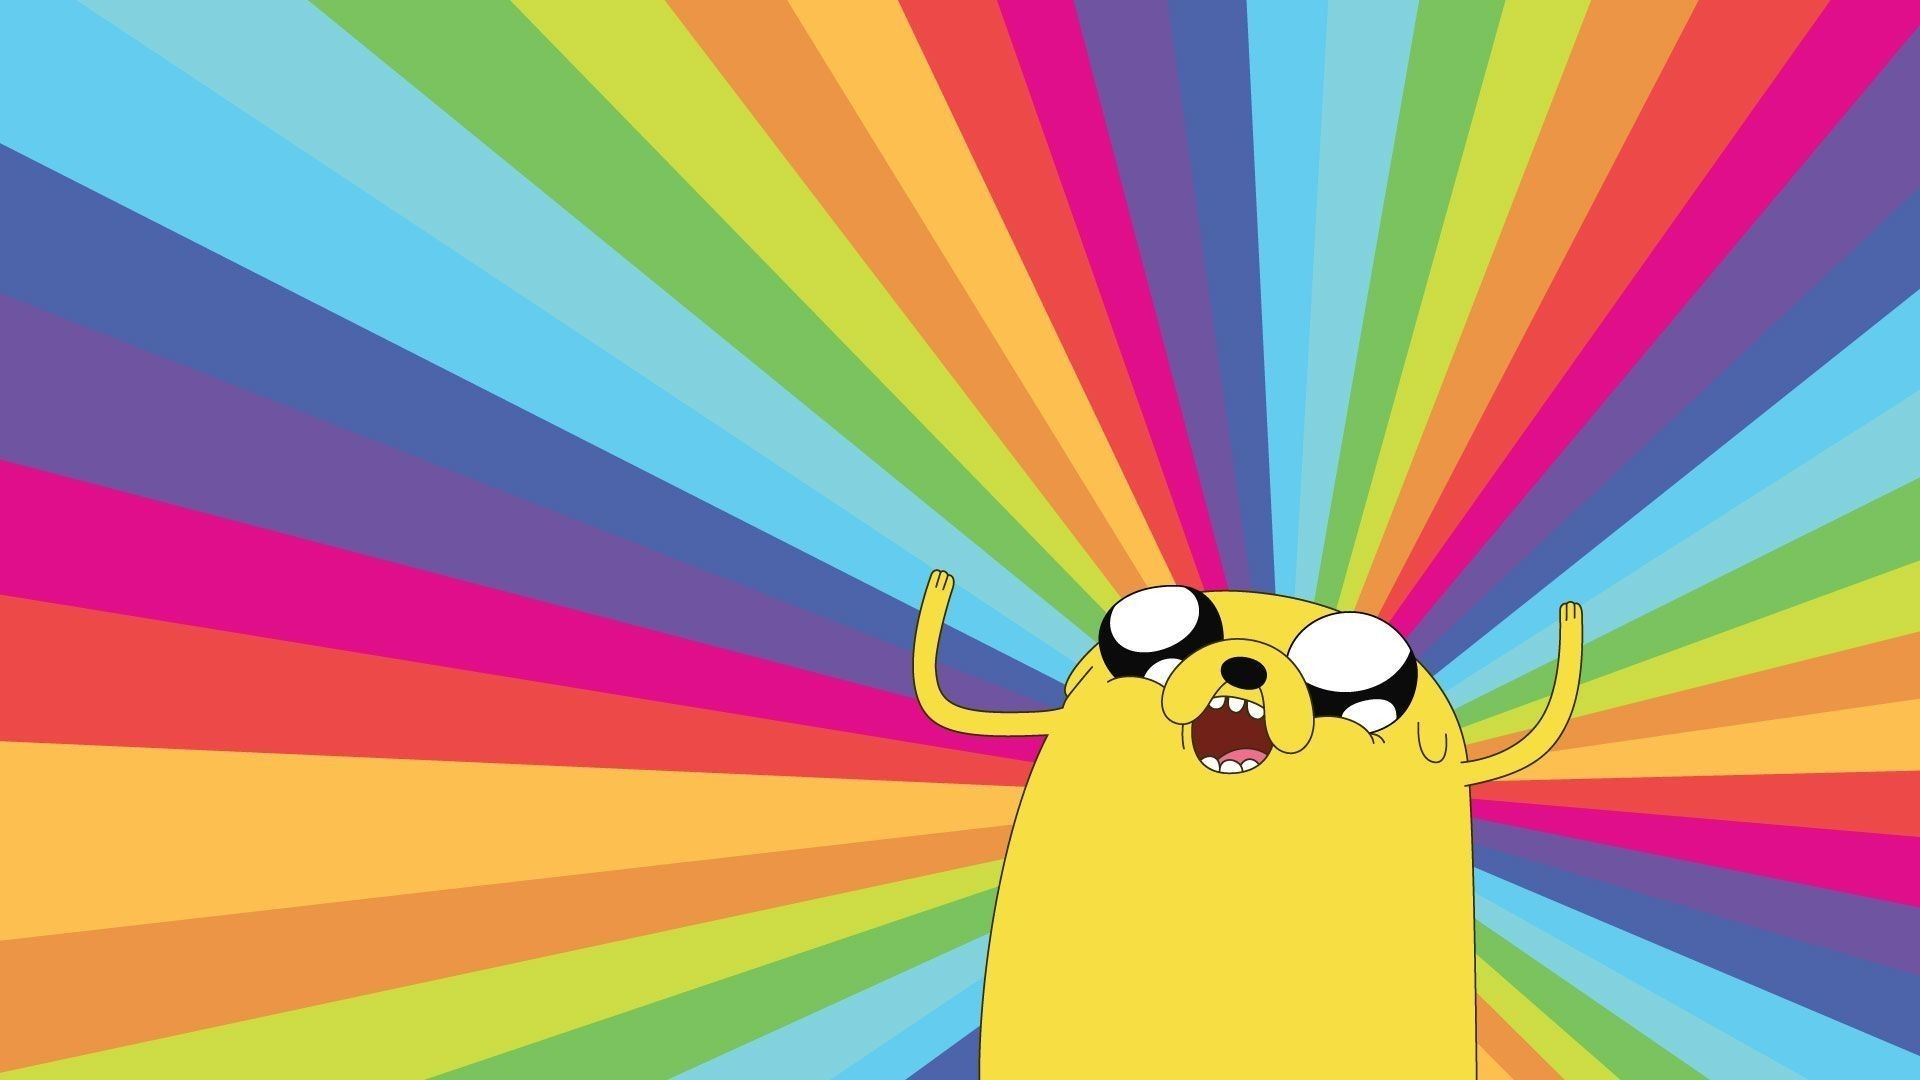 1920x1080   Adventure Time HD Wallpapers and Backgrounds Adventure  Time Wallpaper Hd Wallpapers)